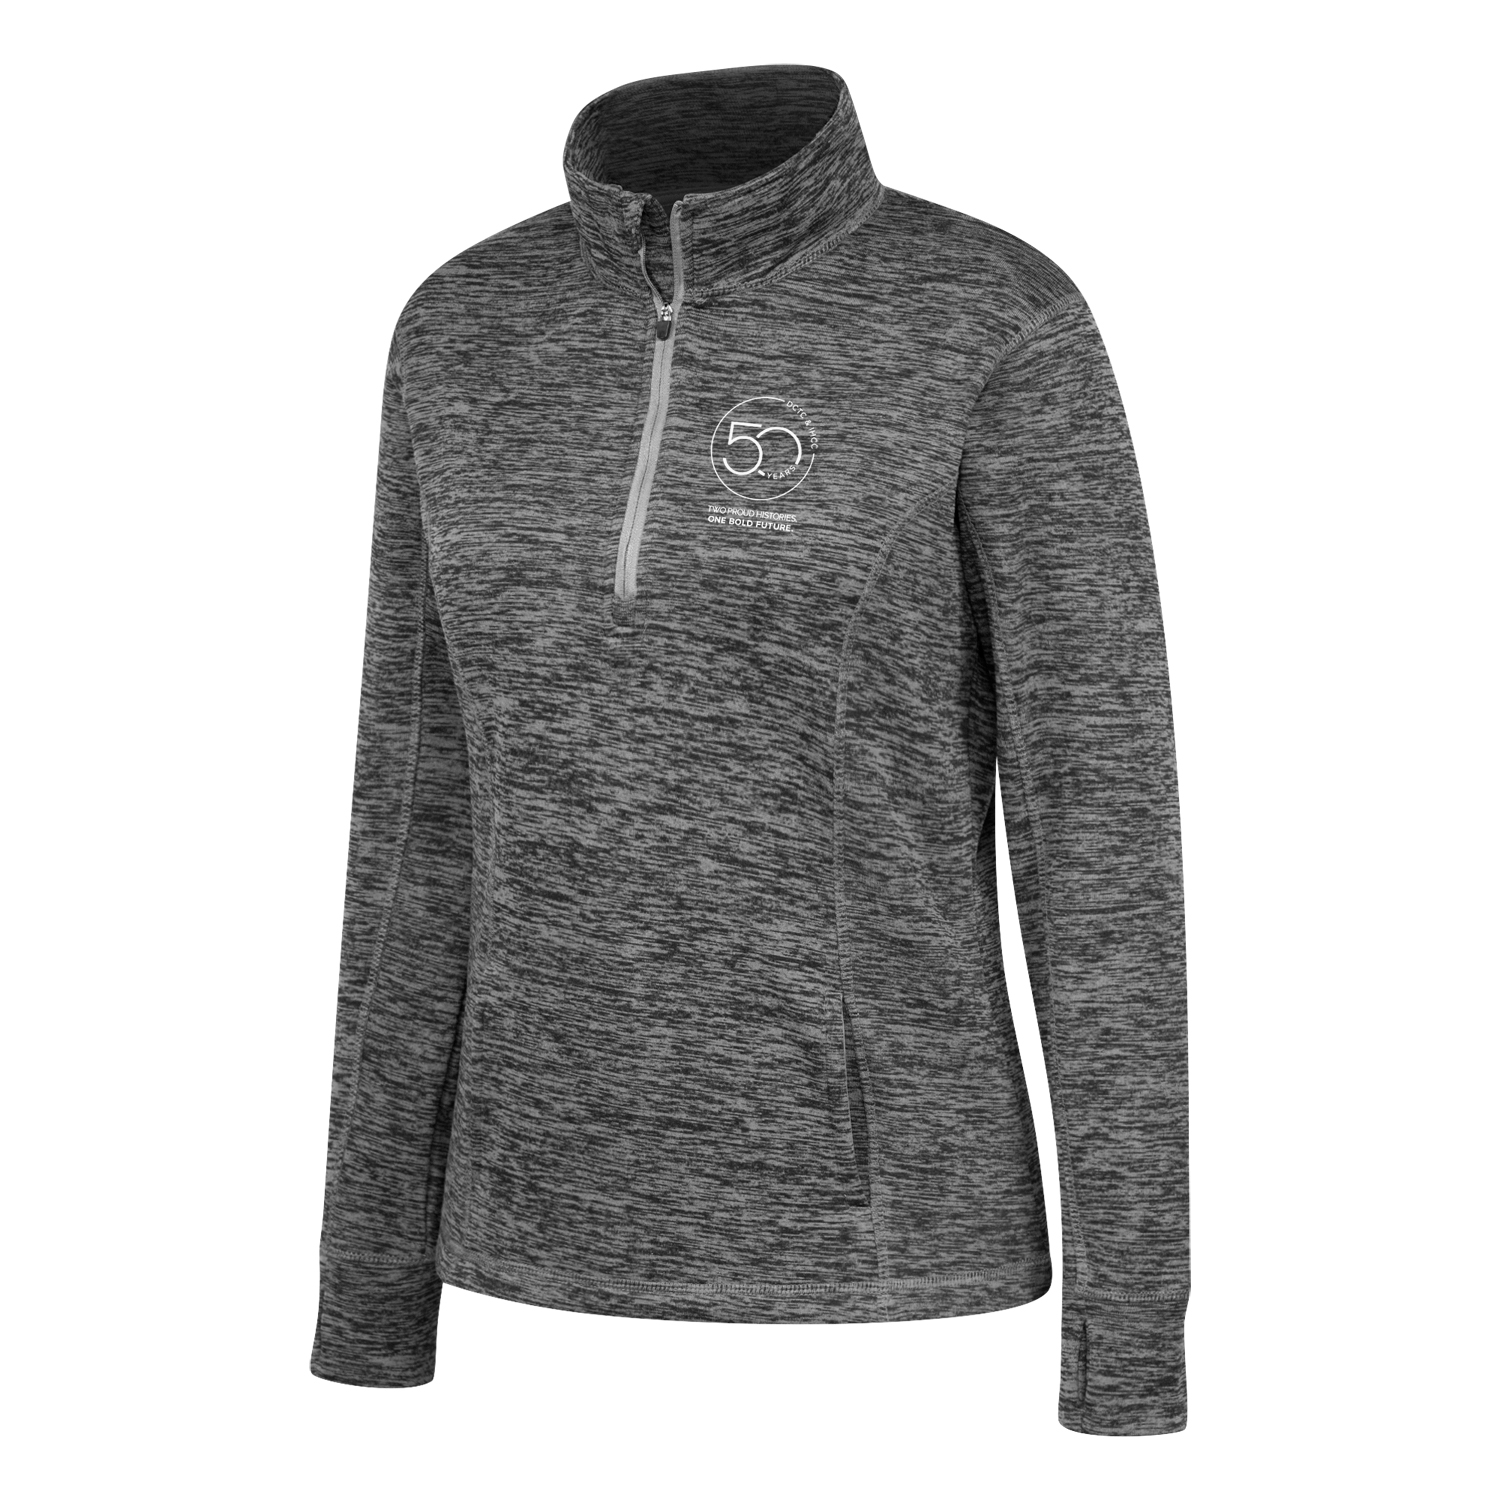 Image For 50th Anniversary Women's 1/4 Zip Sweatshirt